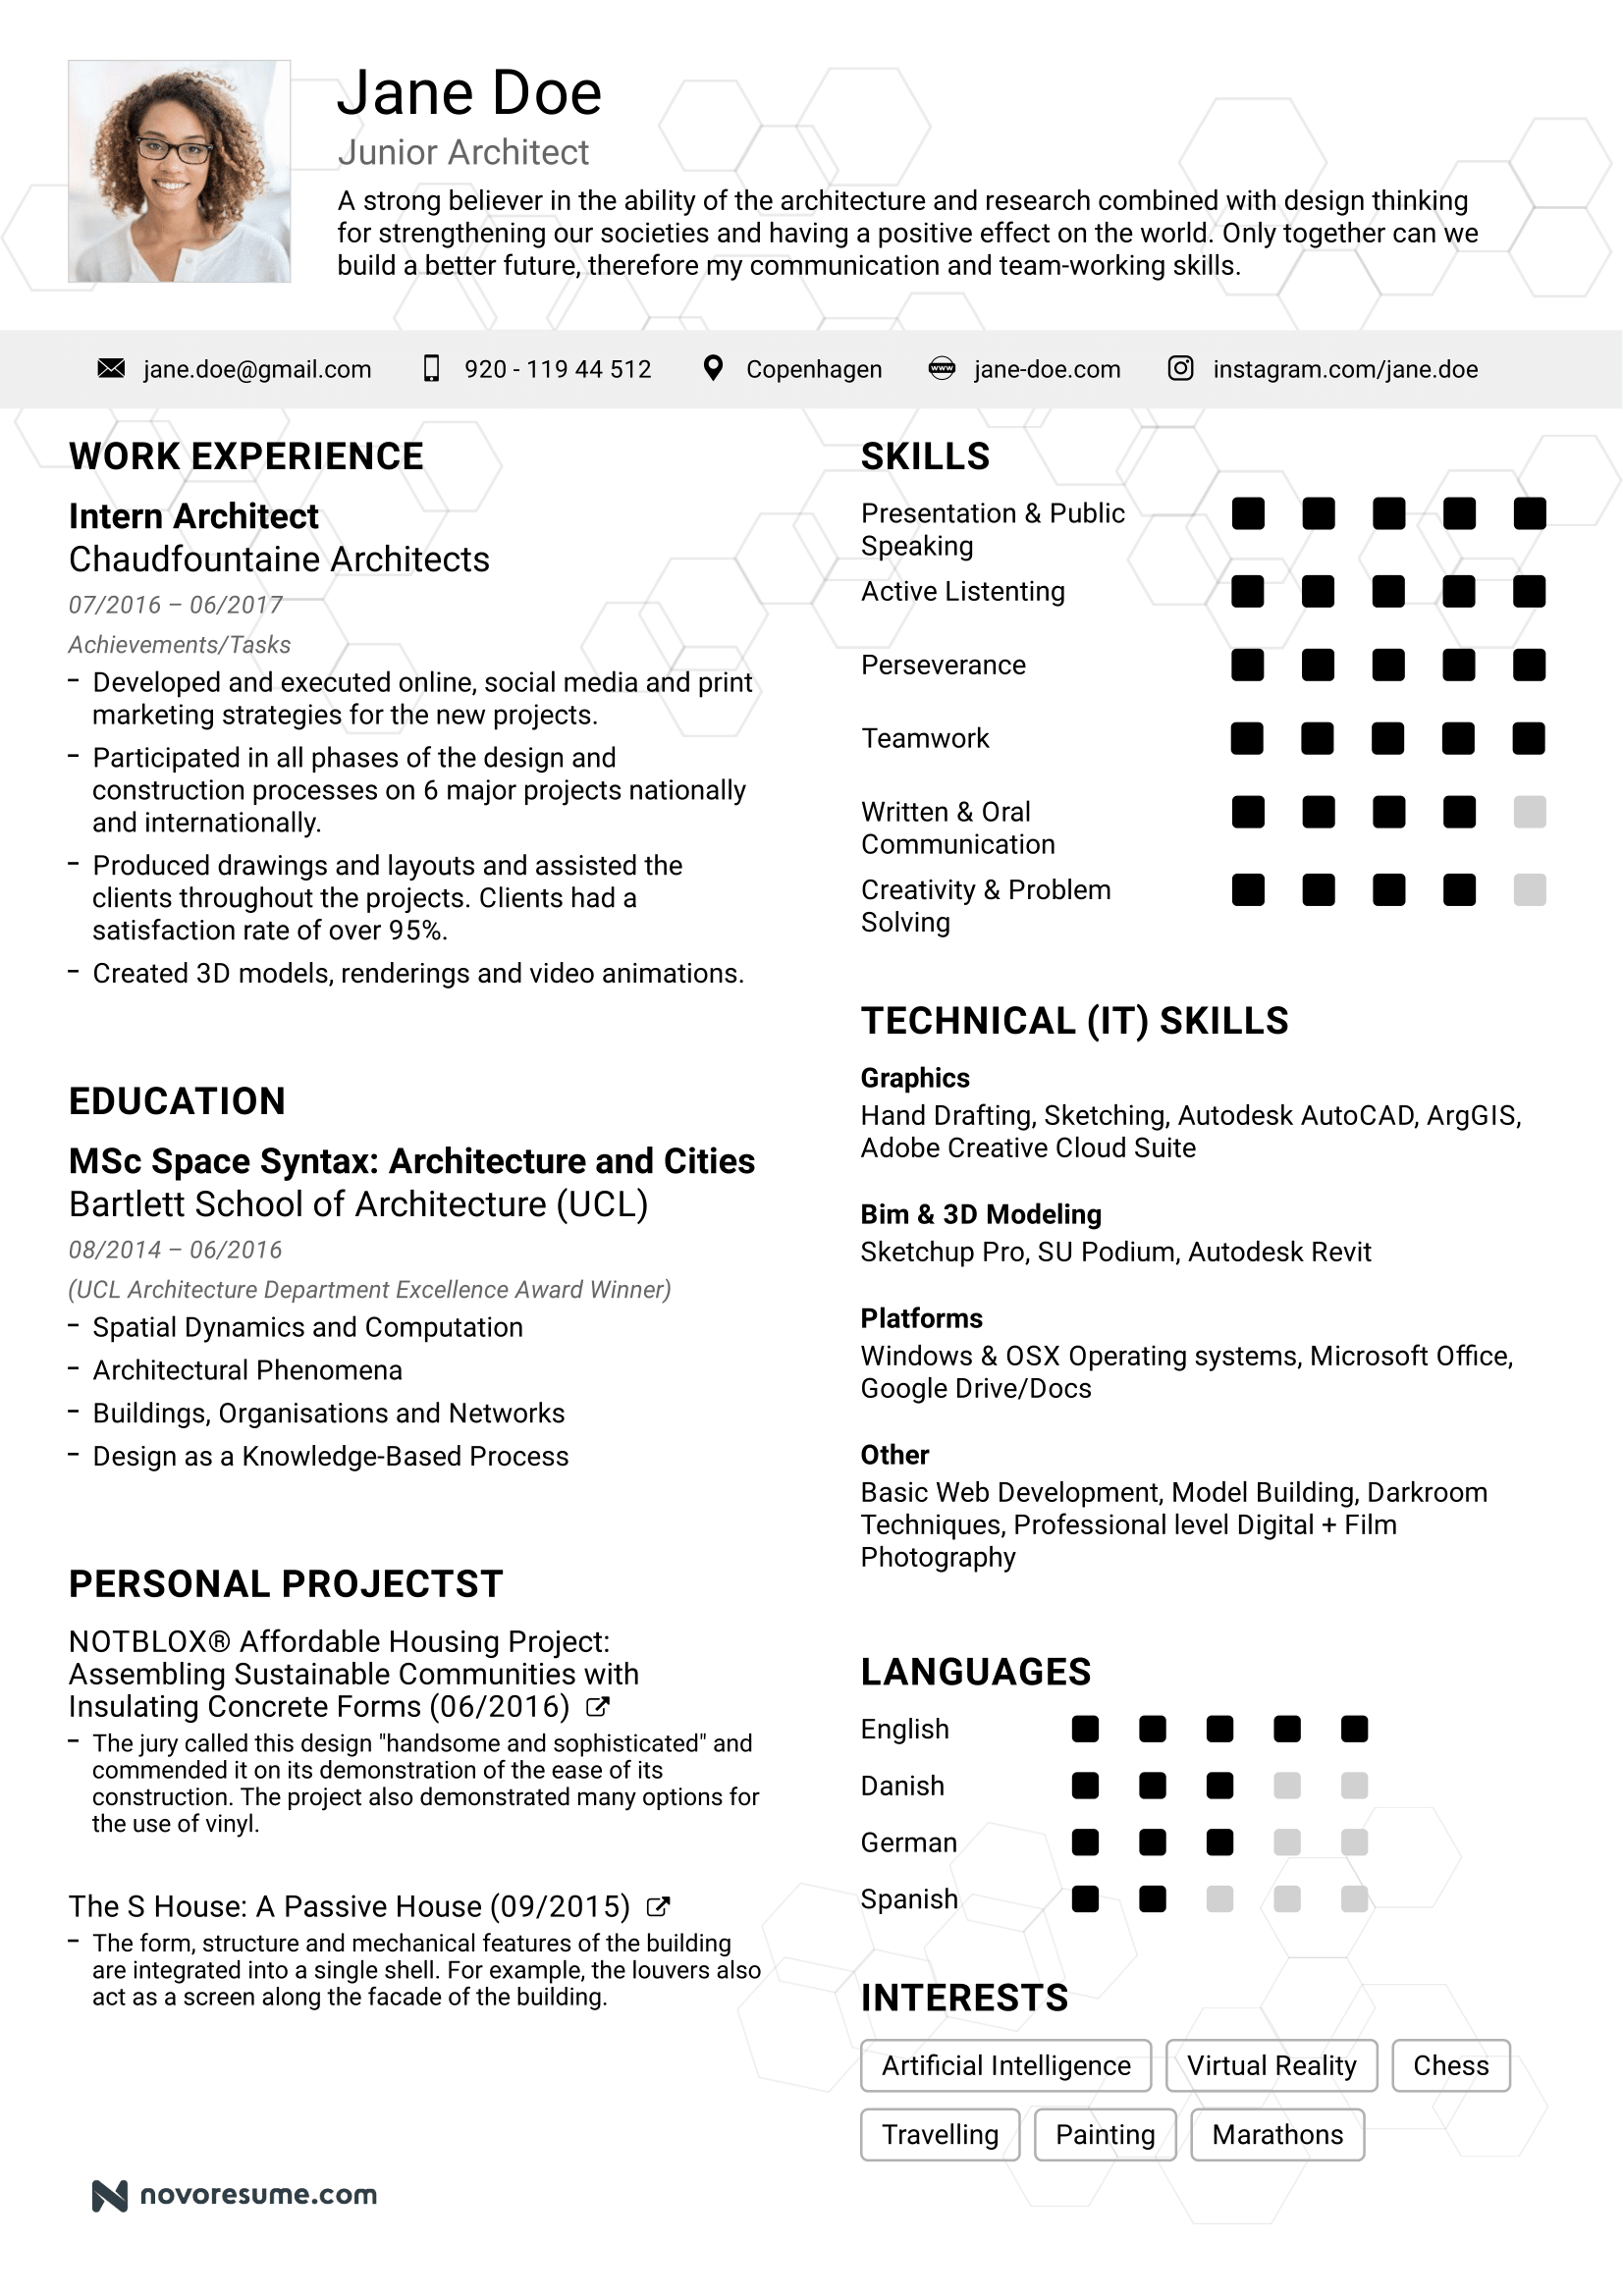 Resume Sample: Example of Business Analyst Resume Targeted to the ...